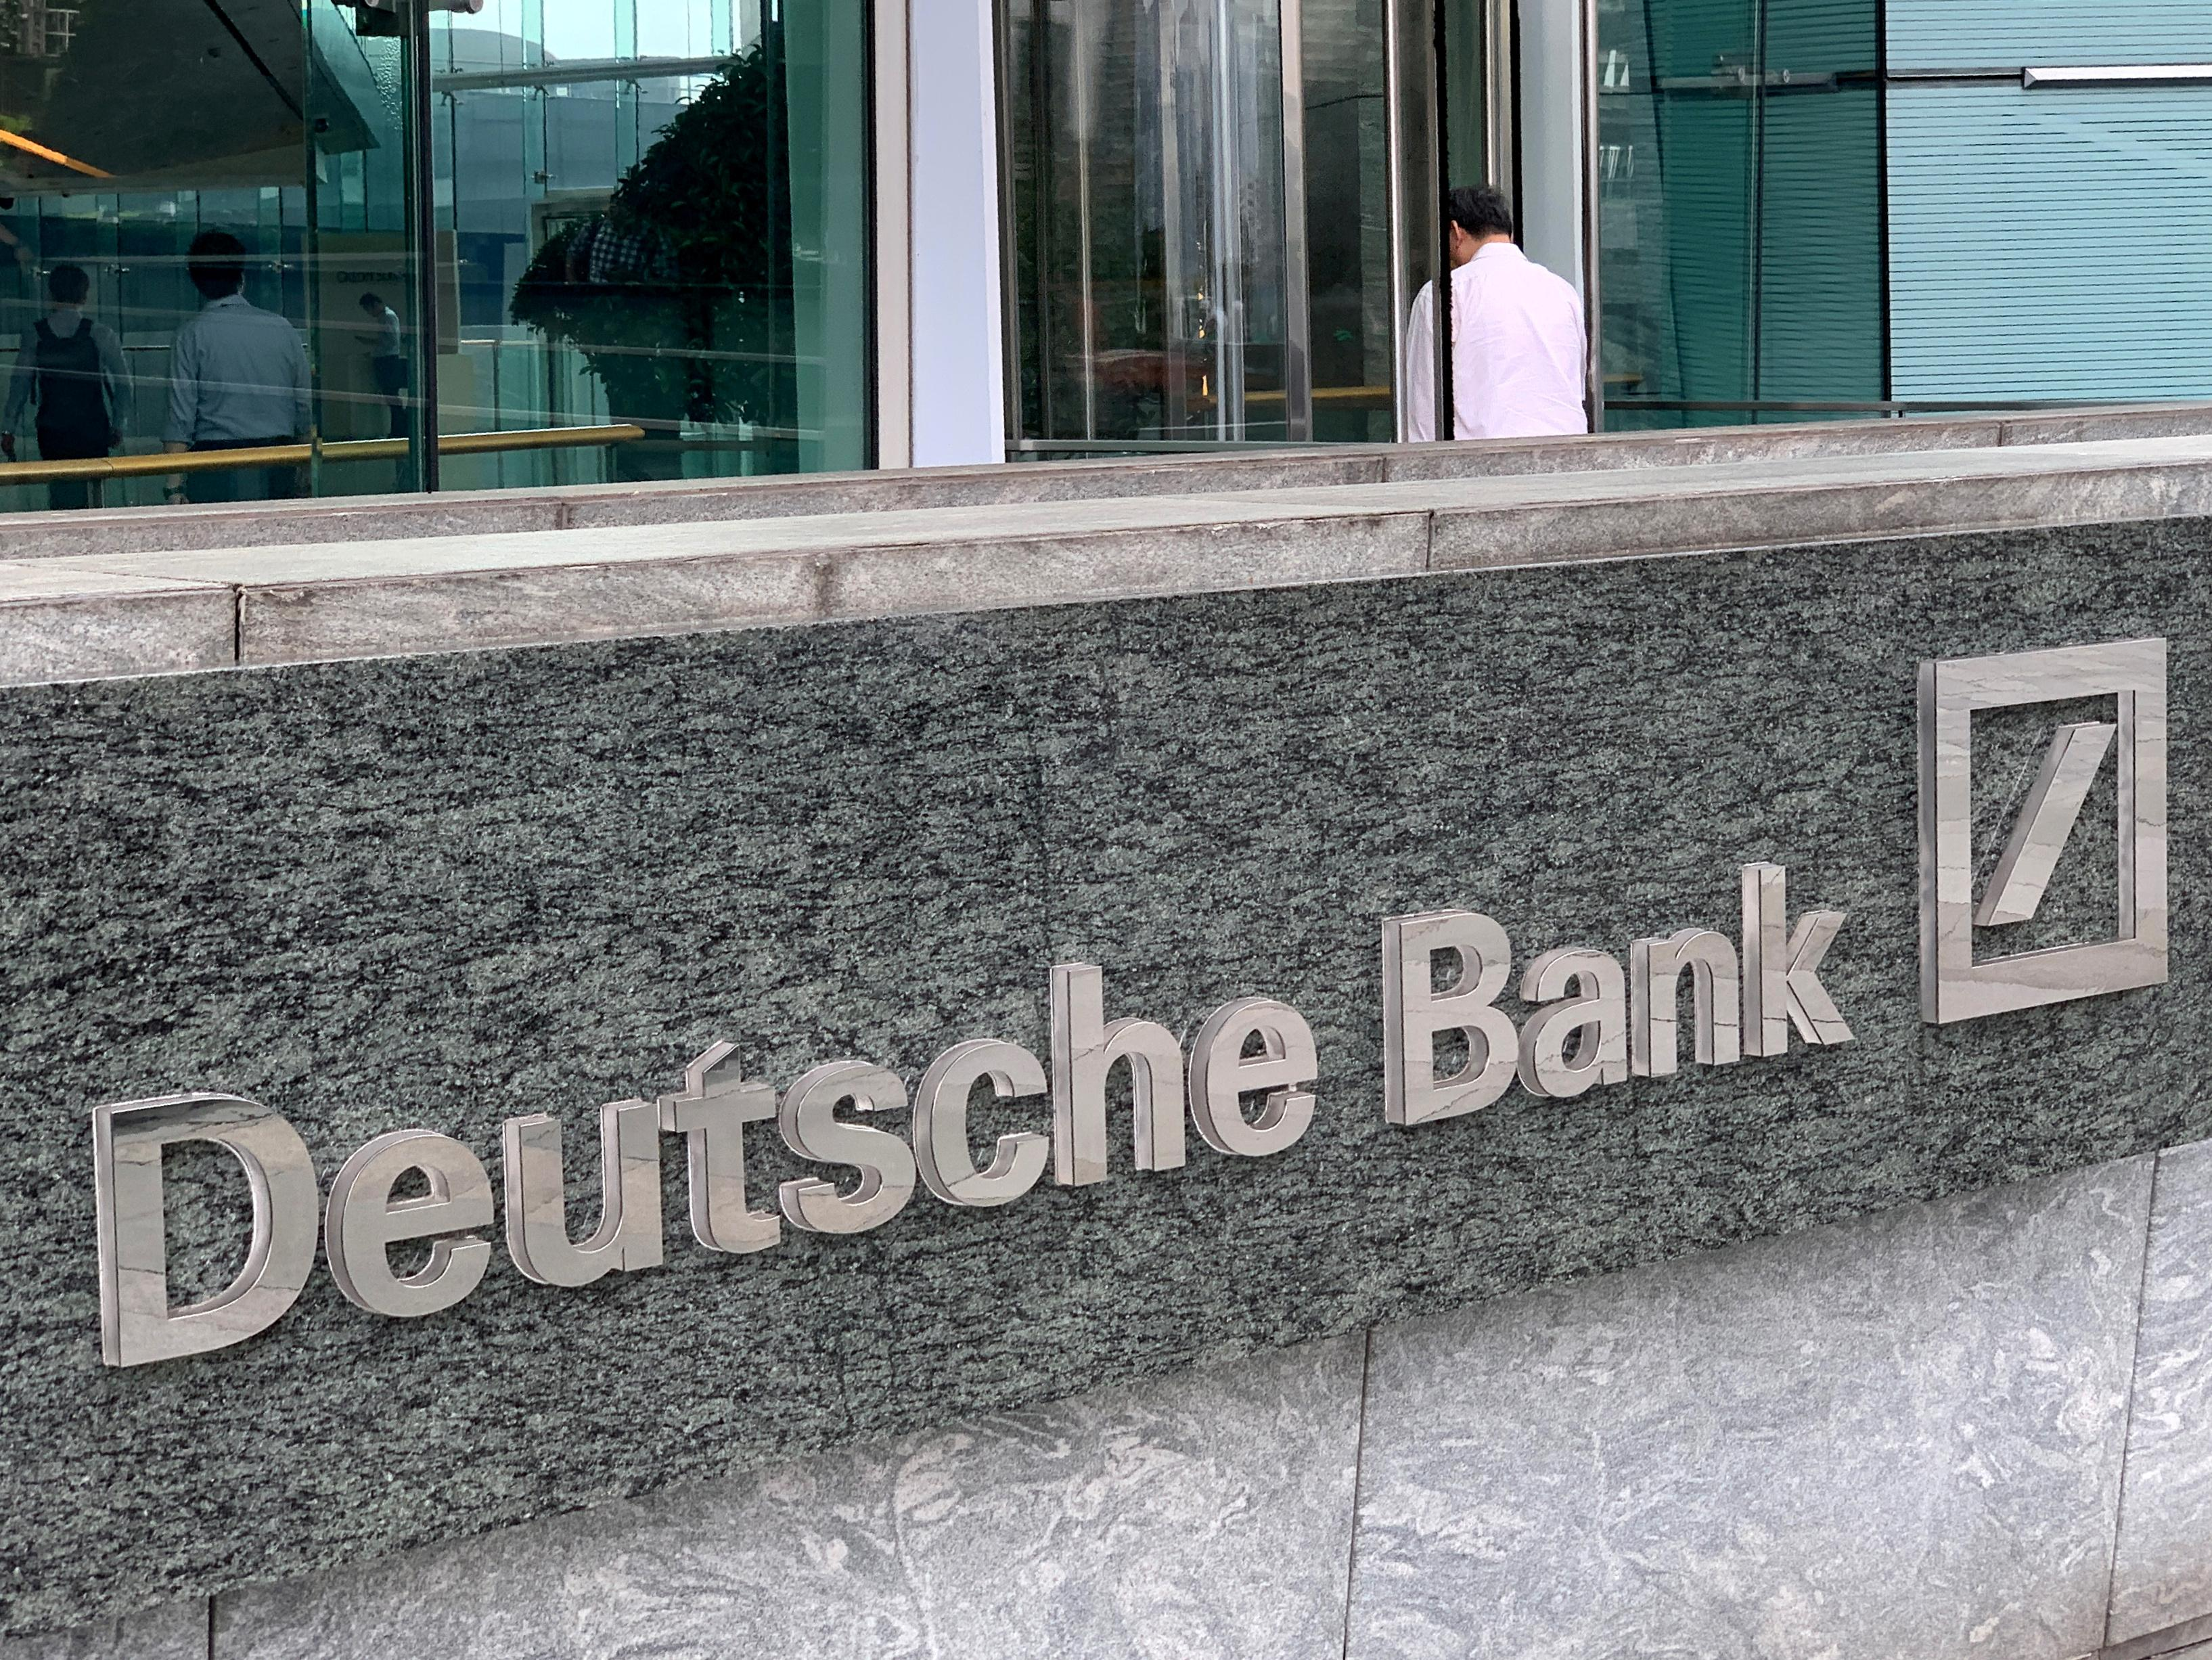 Deutsche Bank to transfer up to 800 people to BNP in prime brokerage deal: source